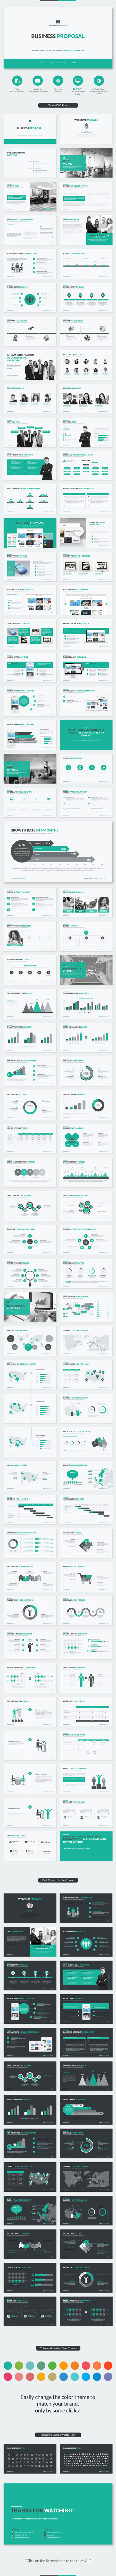 GraphicRiver Business Proposal PowerPoint Template 11833931